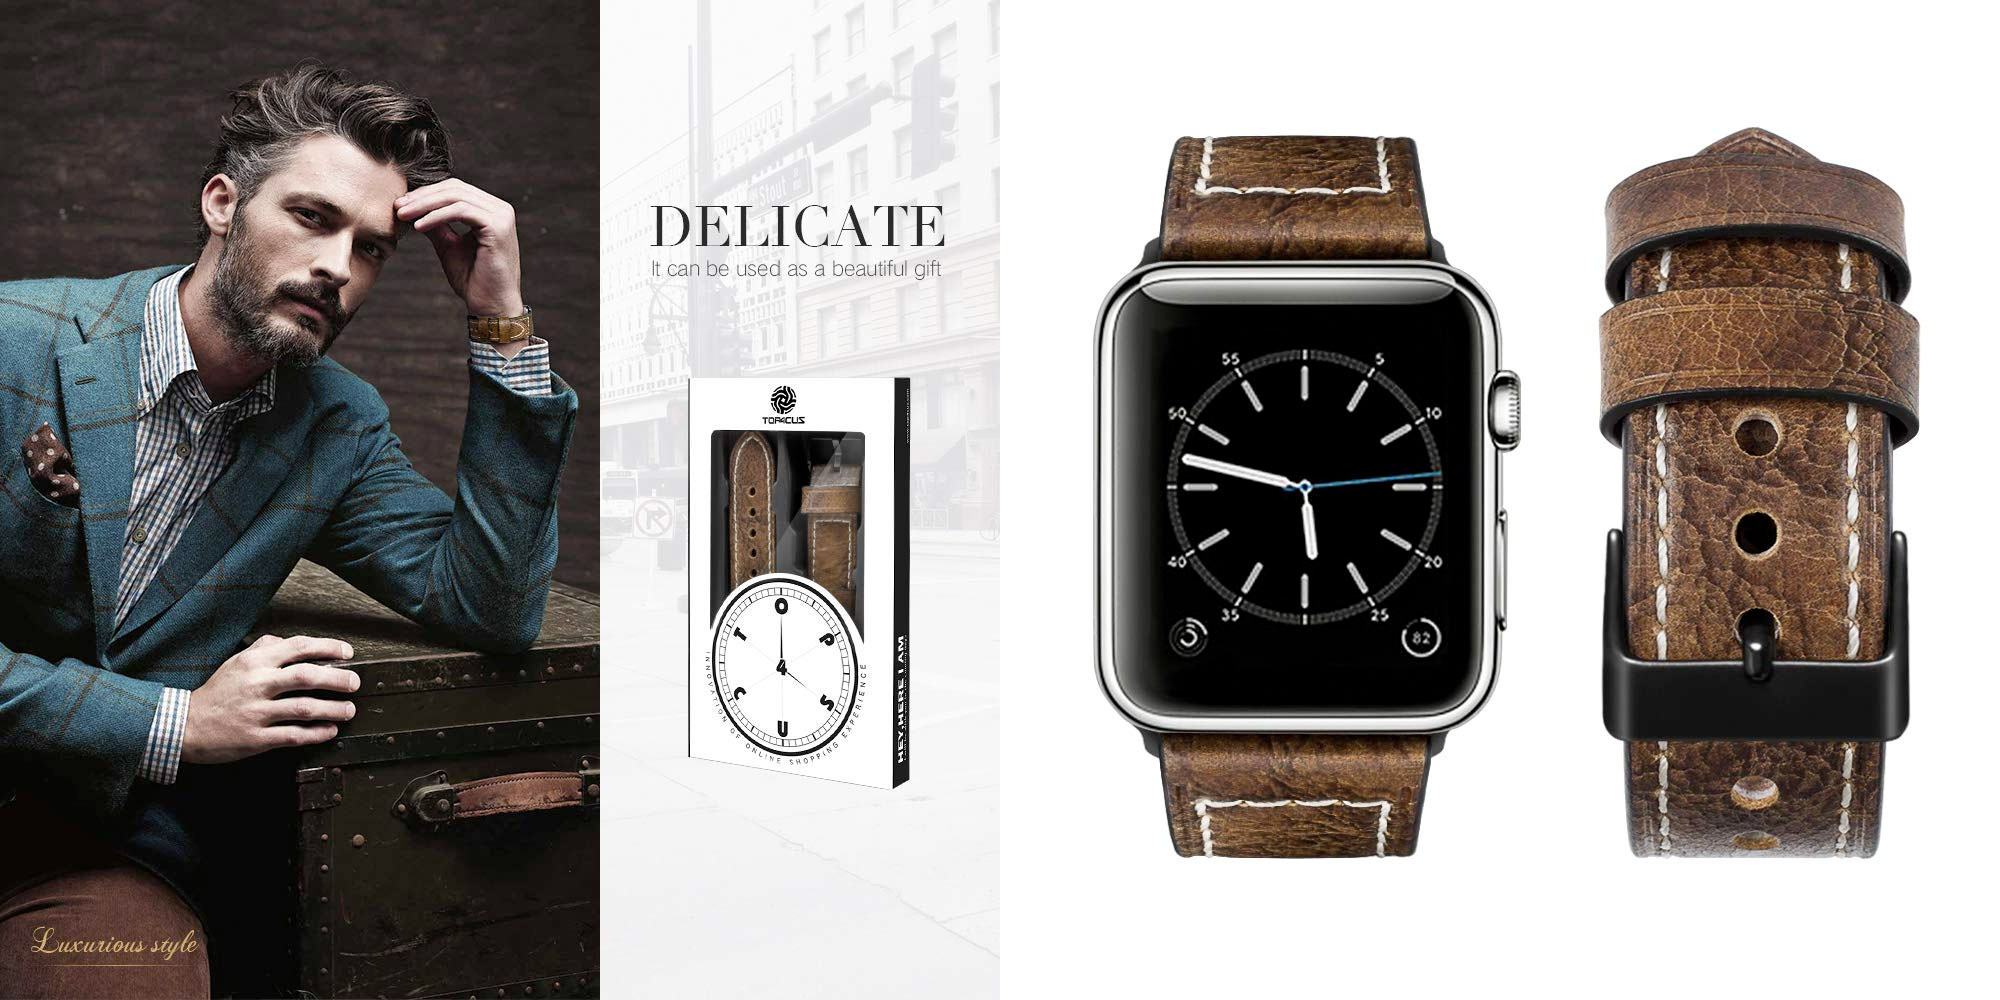 Upgrade your Apple Watch's look w/ these genuine leather bands for $5.50 shipped